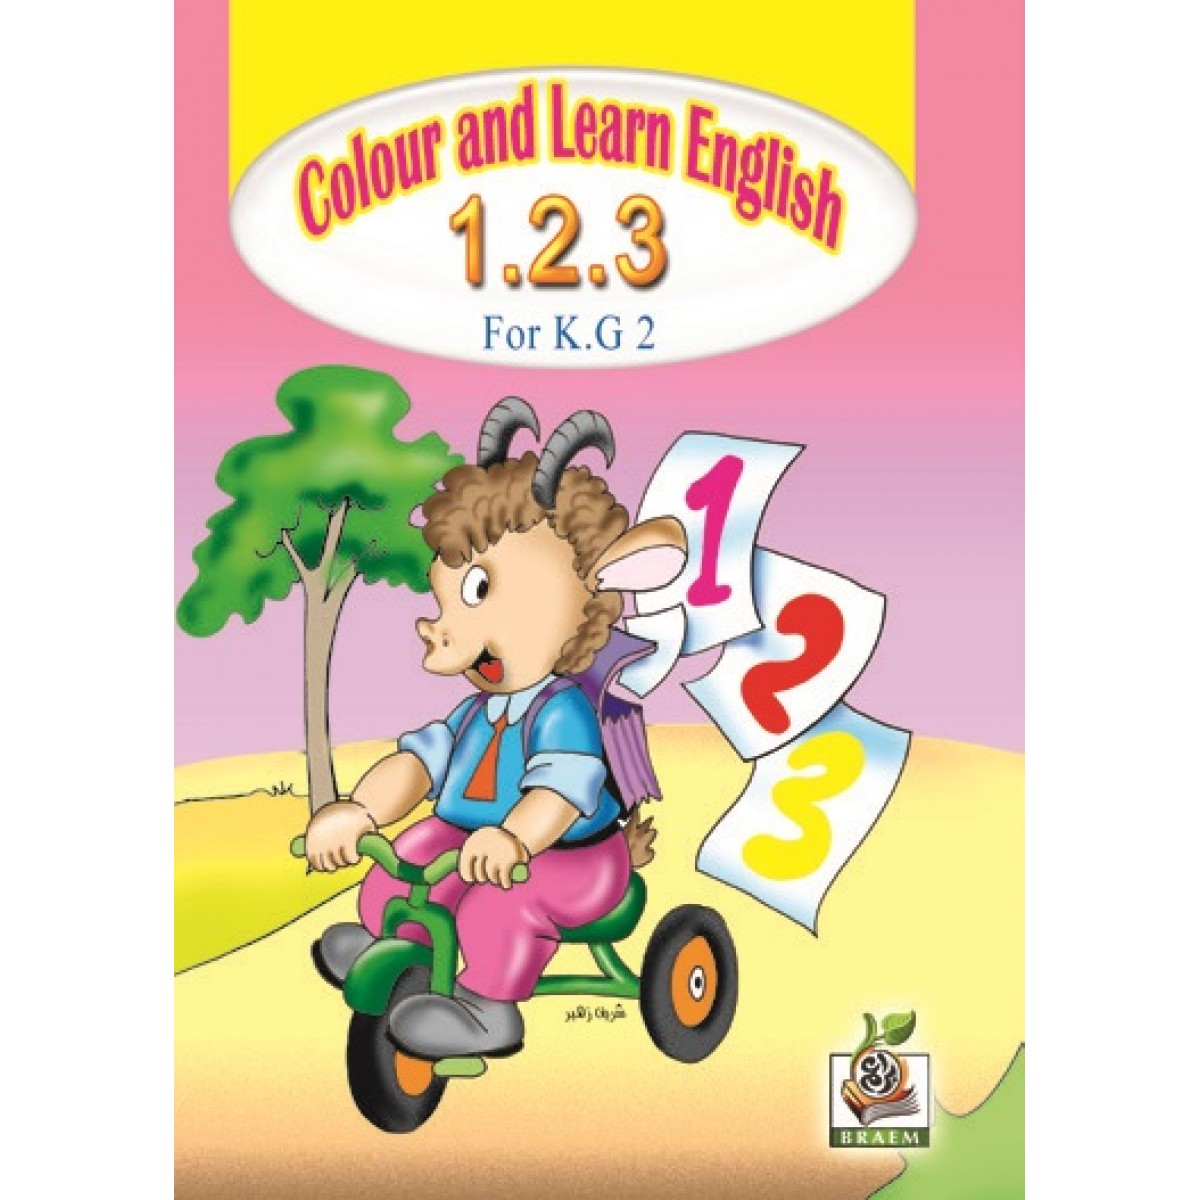 Colour and learn English 1.2.3 مستوى  K.G.2